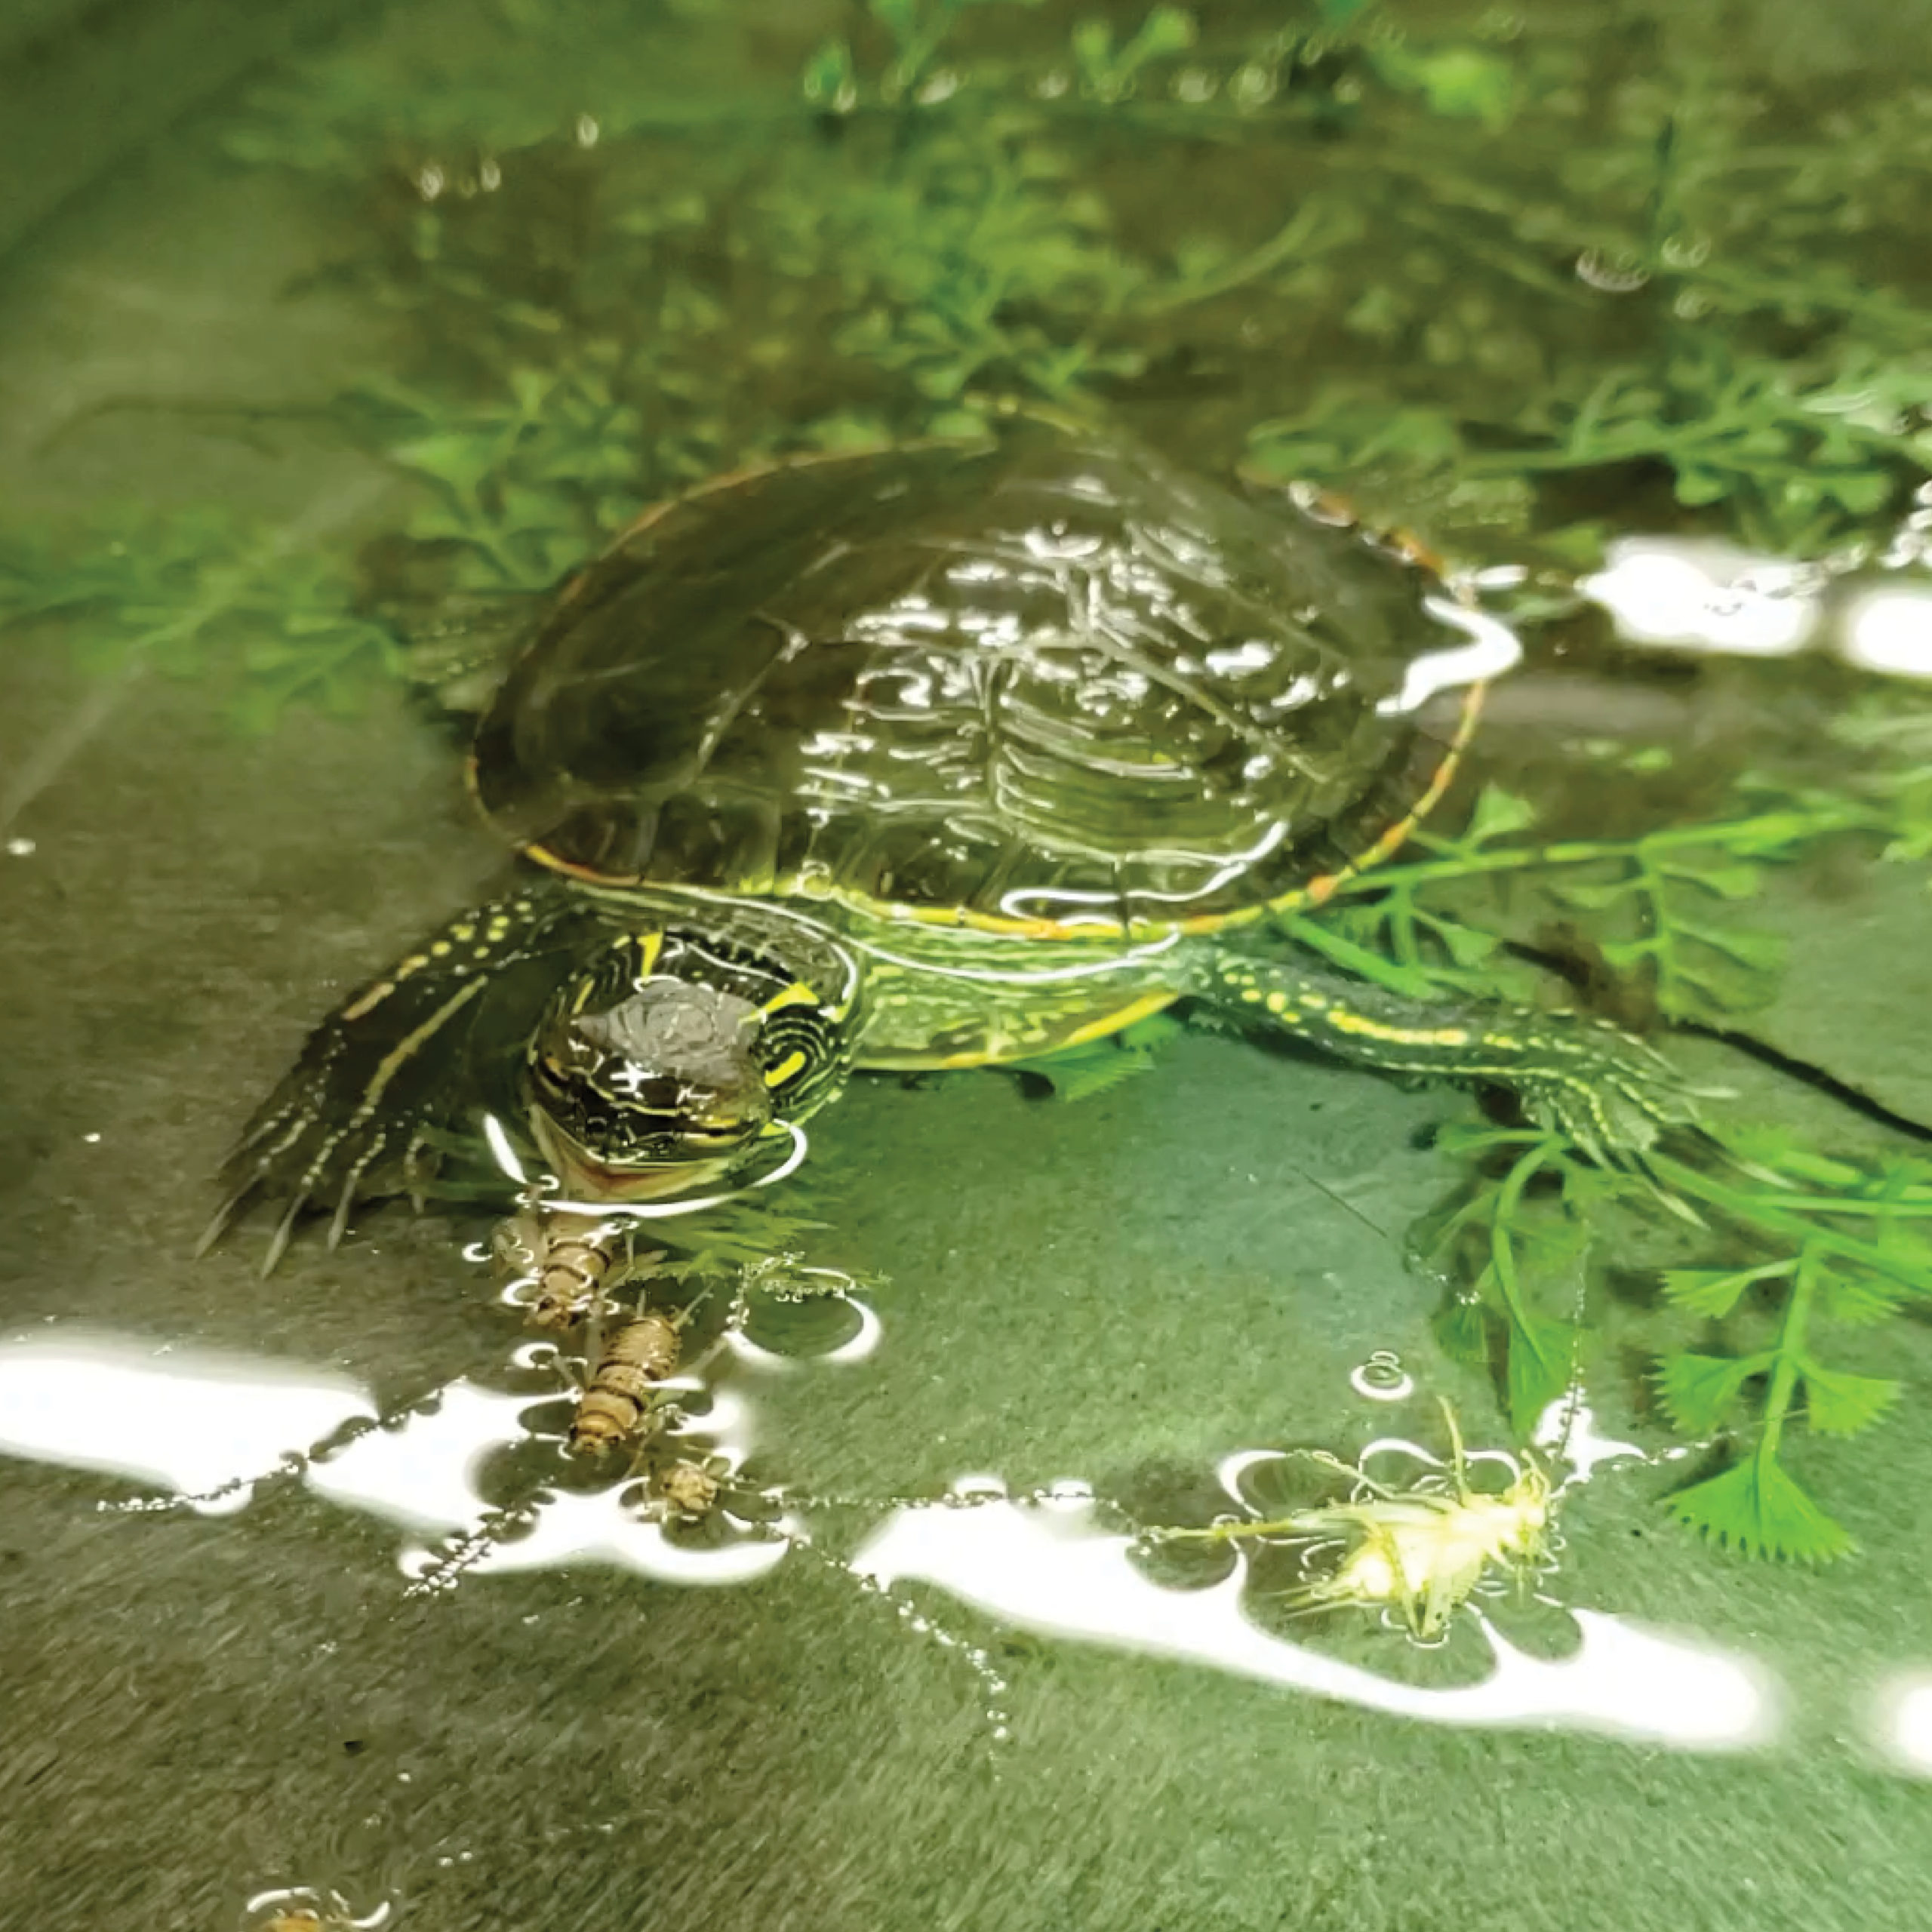 A young western painted turtle provided with a diet that includes shrimps and crickets.